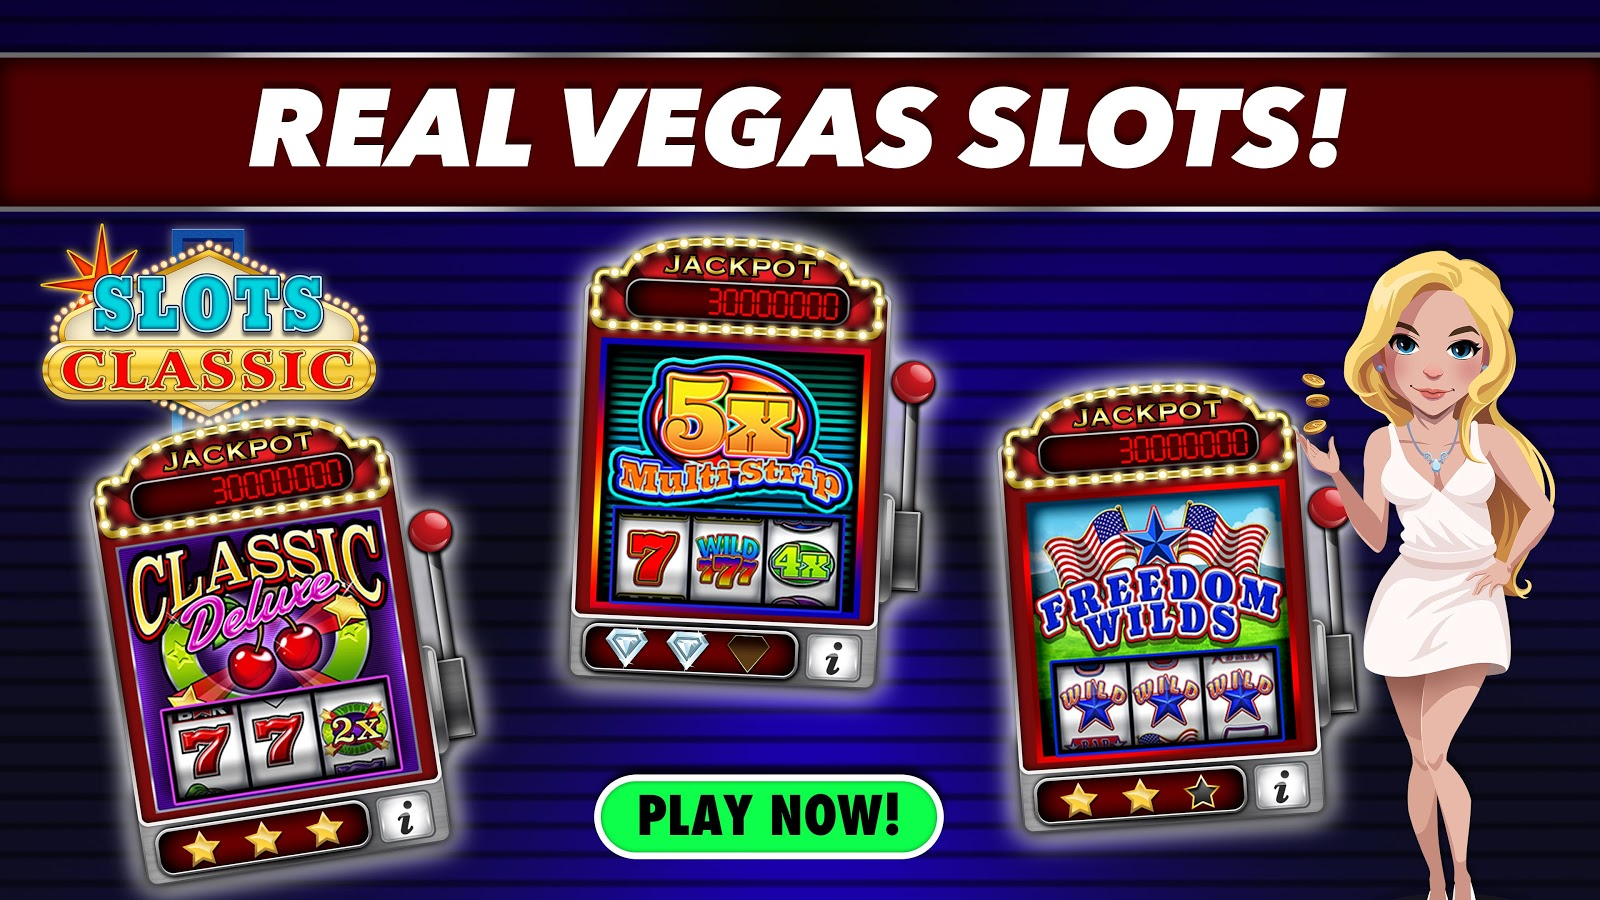 Money Star Slot Machine - Play for Free & Win for Real